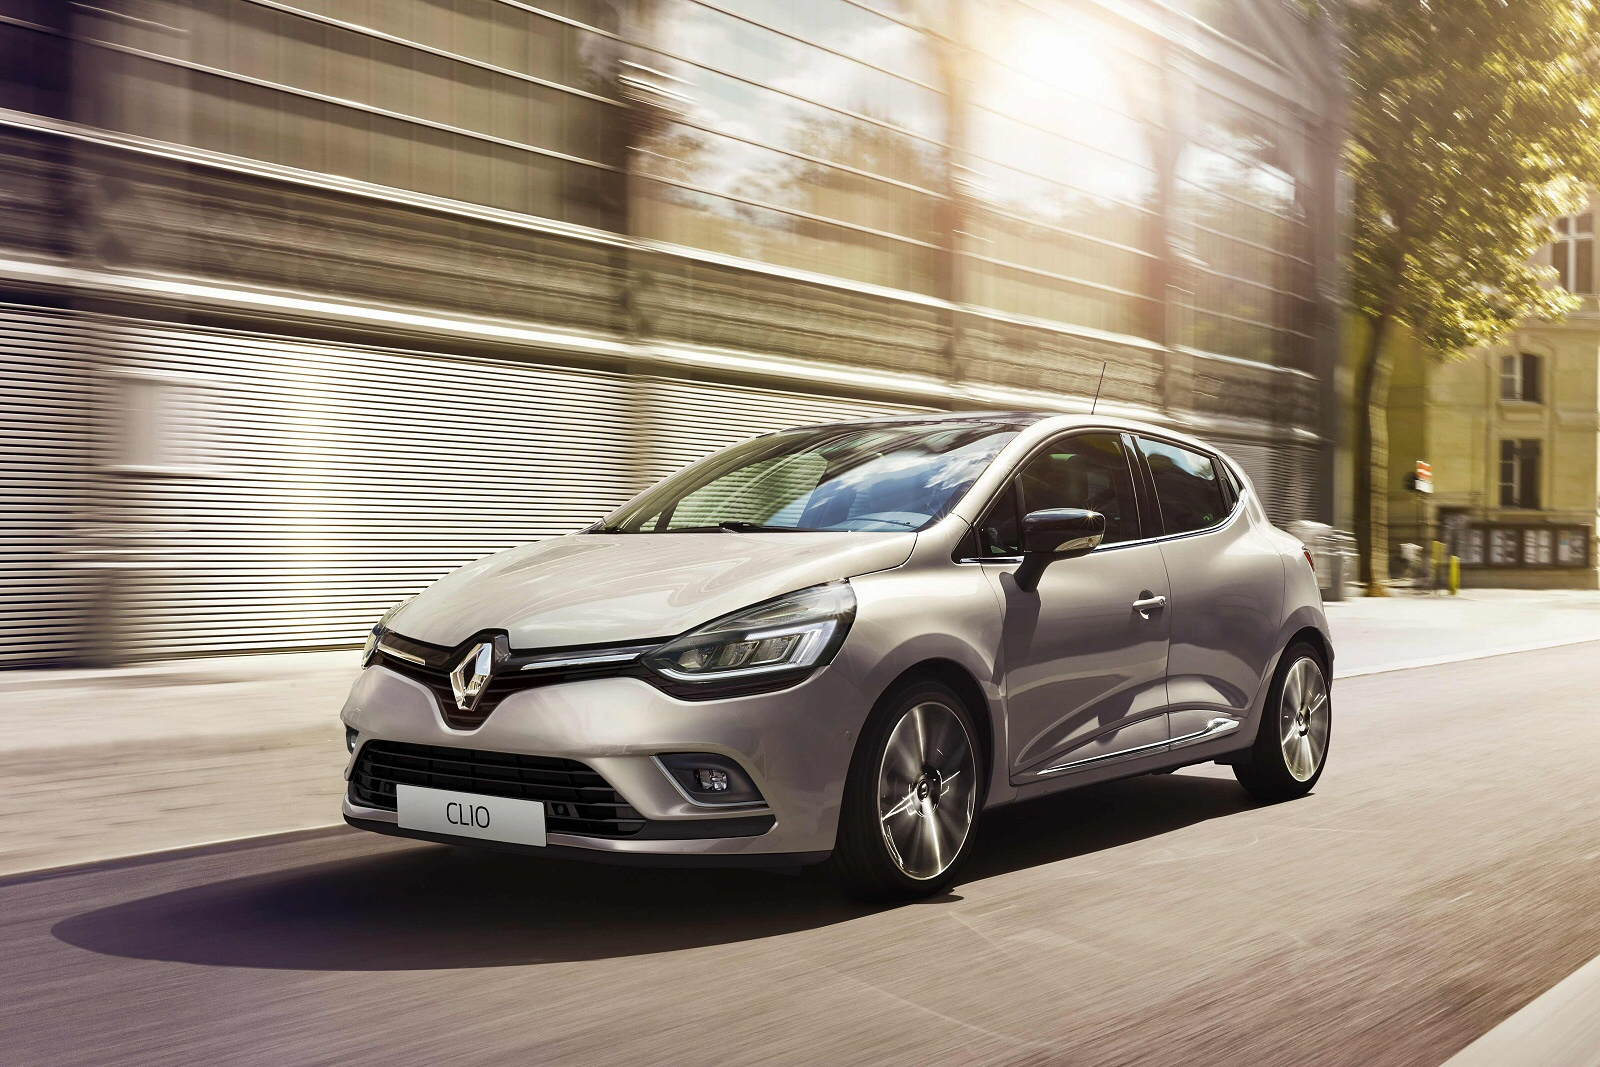 new renault clio 1 2 16v play 5dr petrol hatchback for sale bristol street. Black Bedroom Furniture Sets. Home Design Ideas